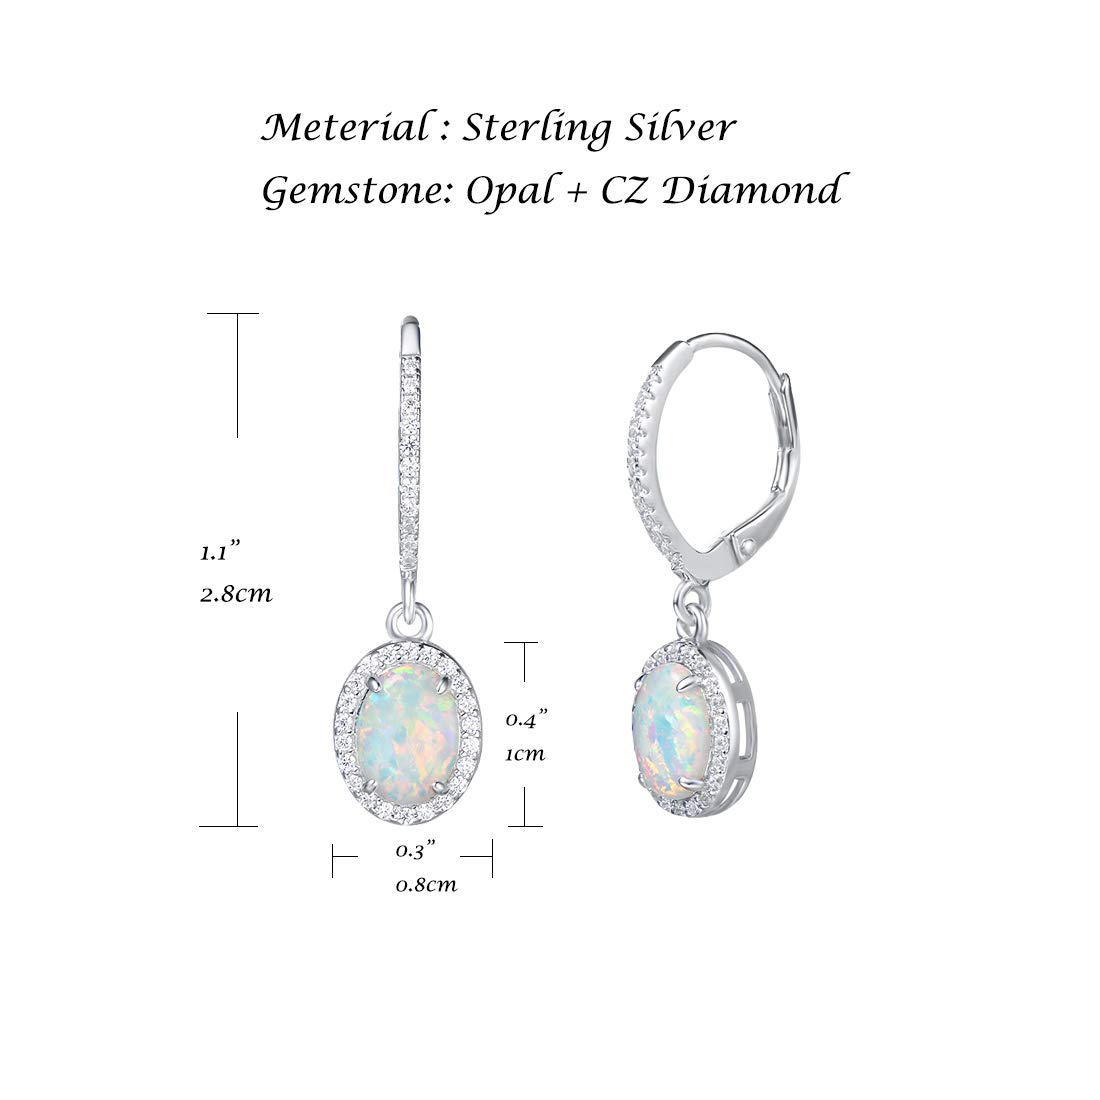 FANCIME Created Opal Lever back Earrings Sterling Silver White Fire Opal Halo Cubic Zirconia Water drop Geometric Oval French Back Drop Dangle Earrings Jewelry for Women Girls